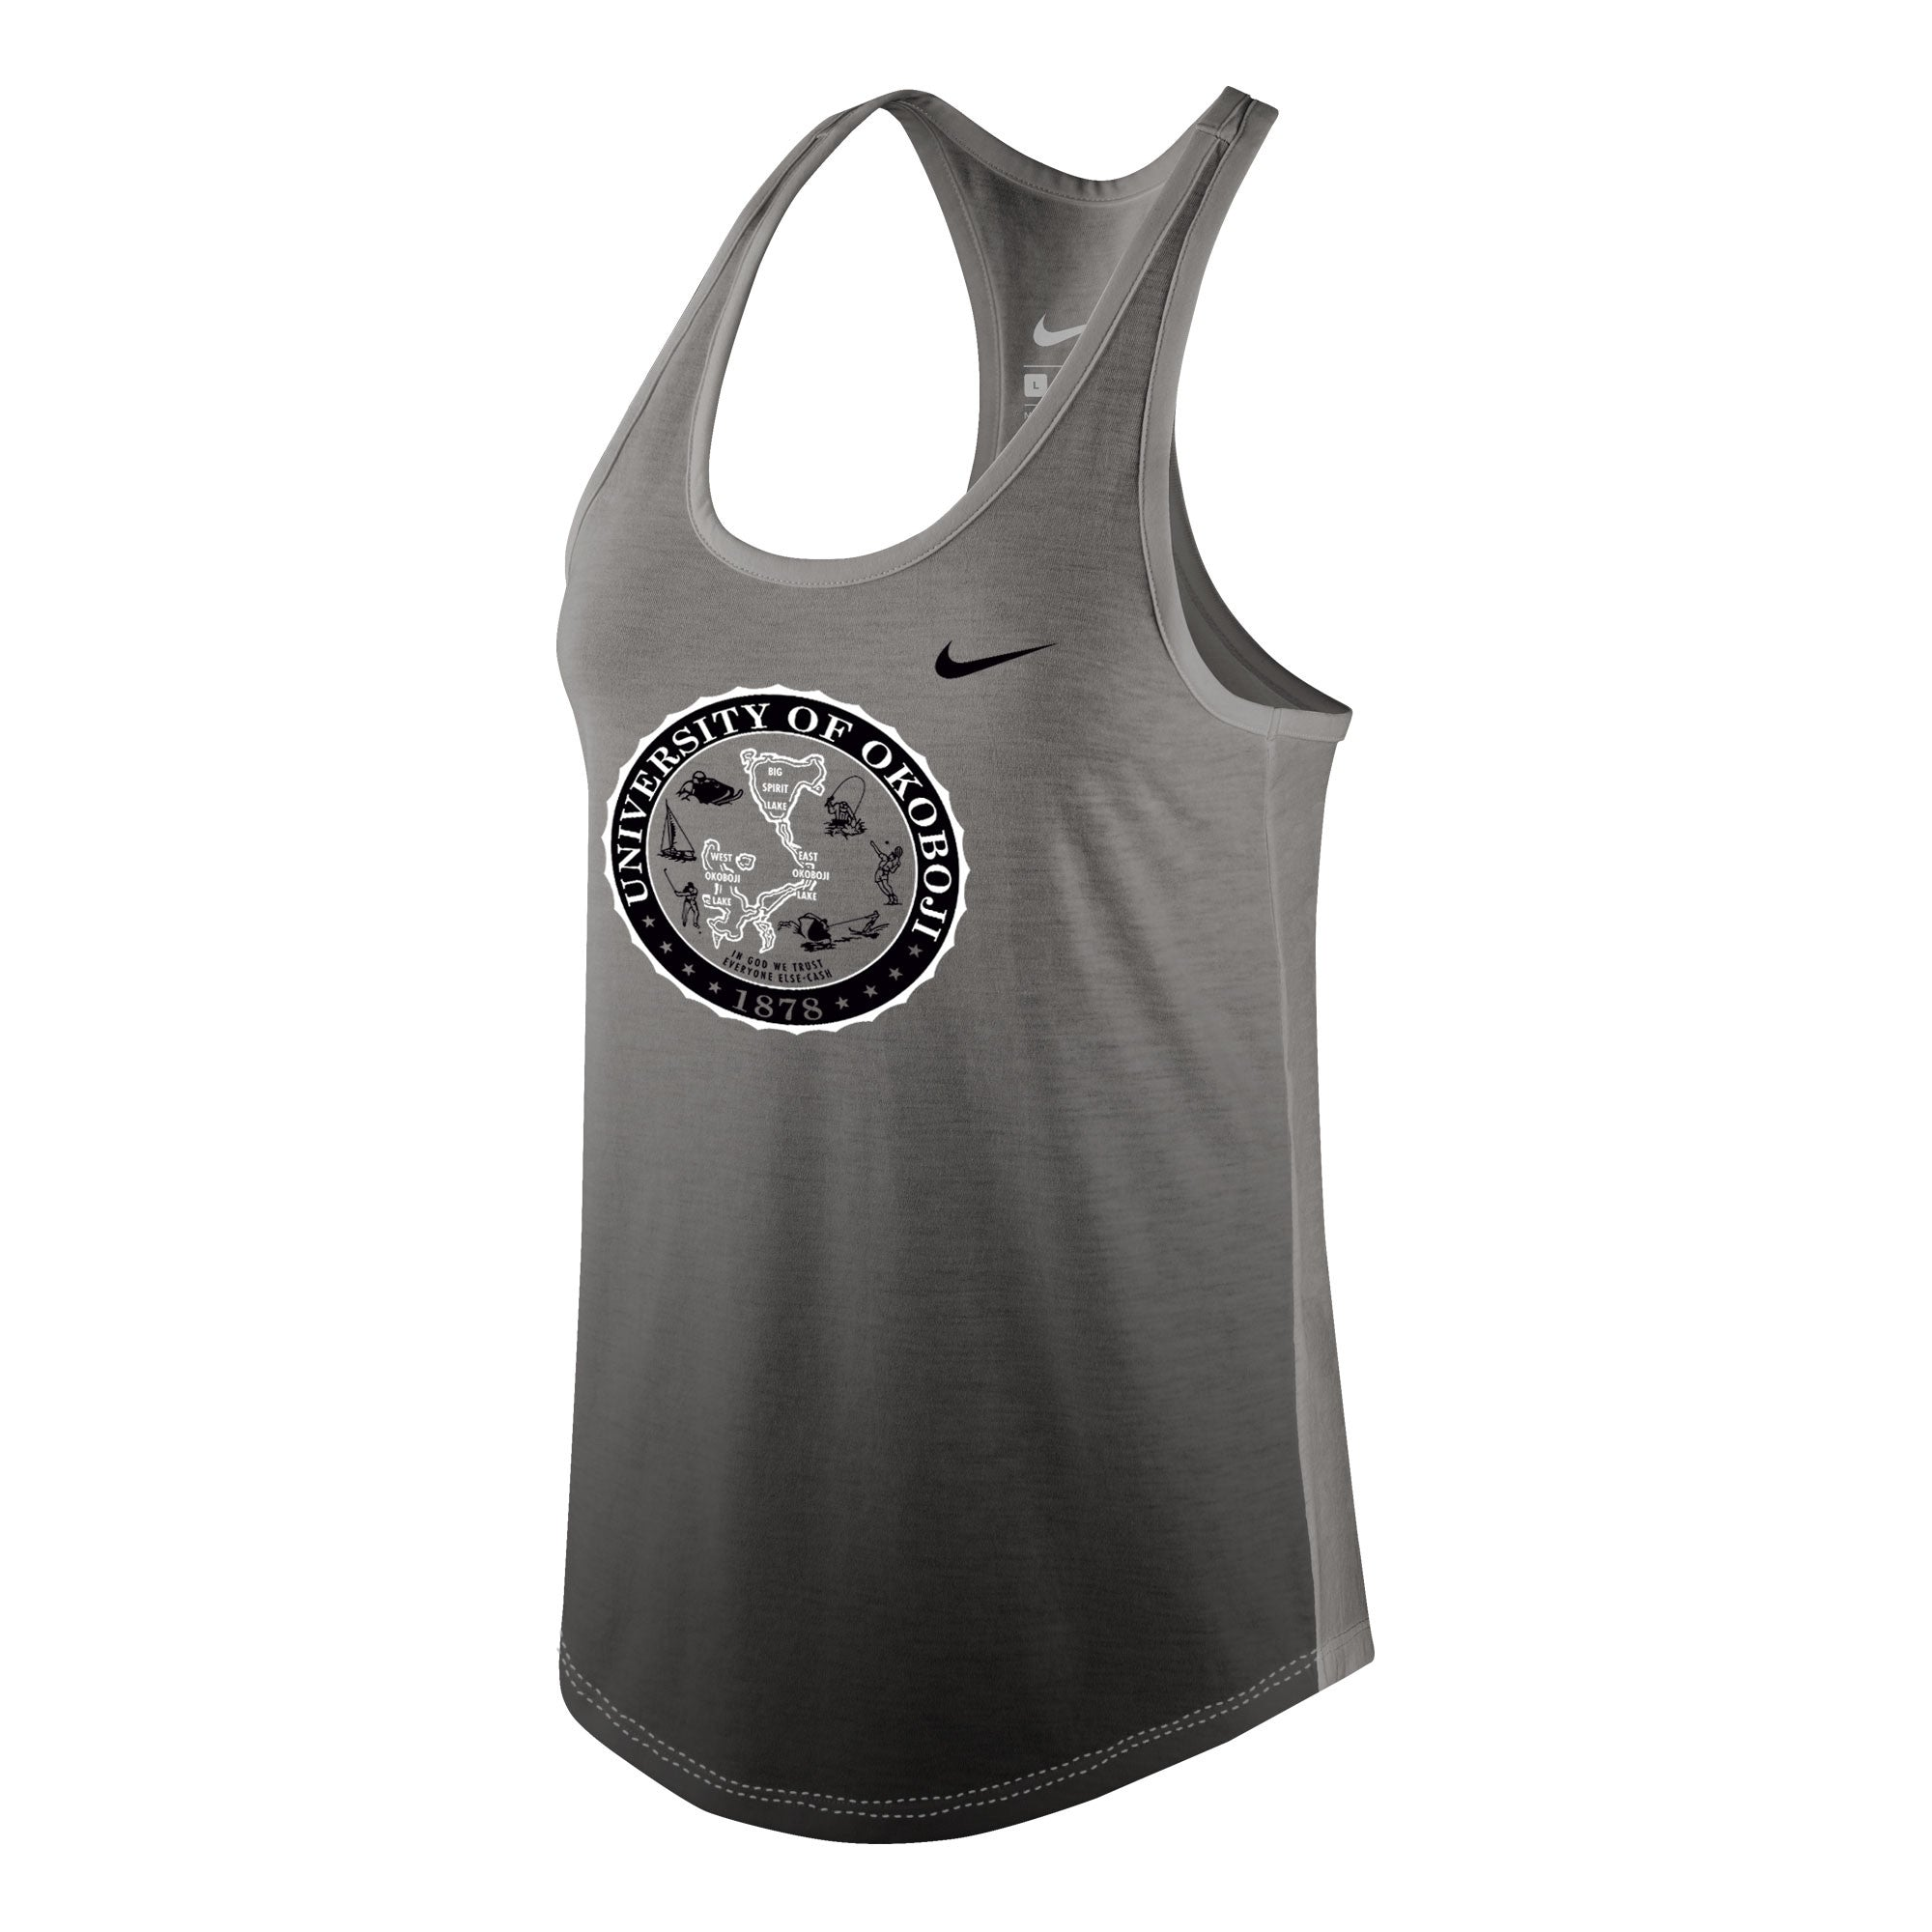 Women's Nike Tri-Blend Gradient Tank - Black